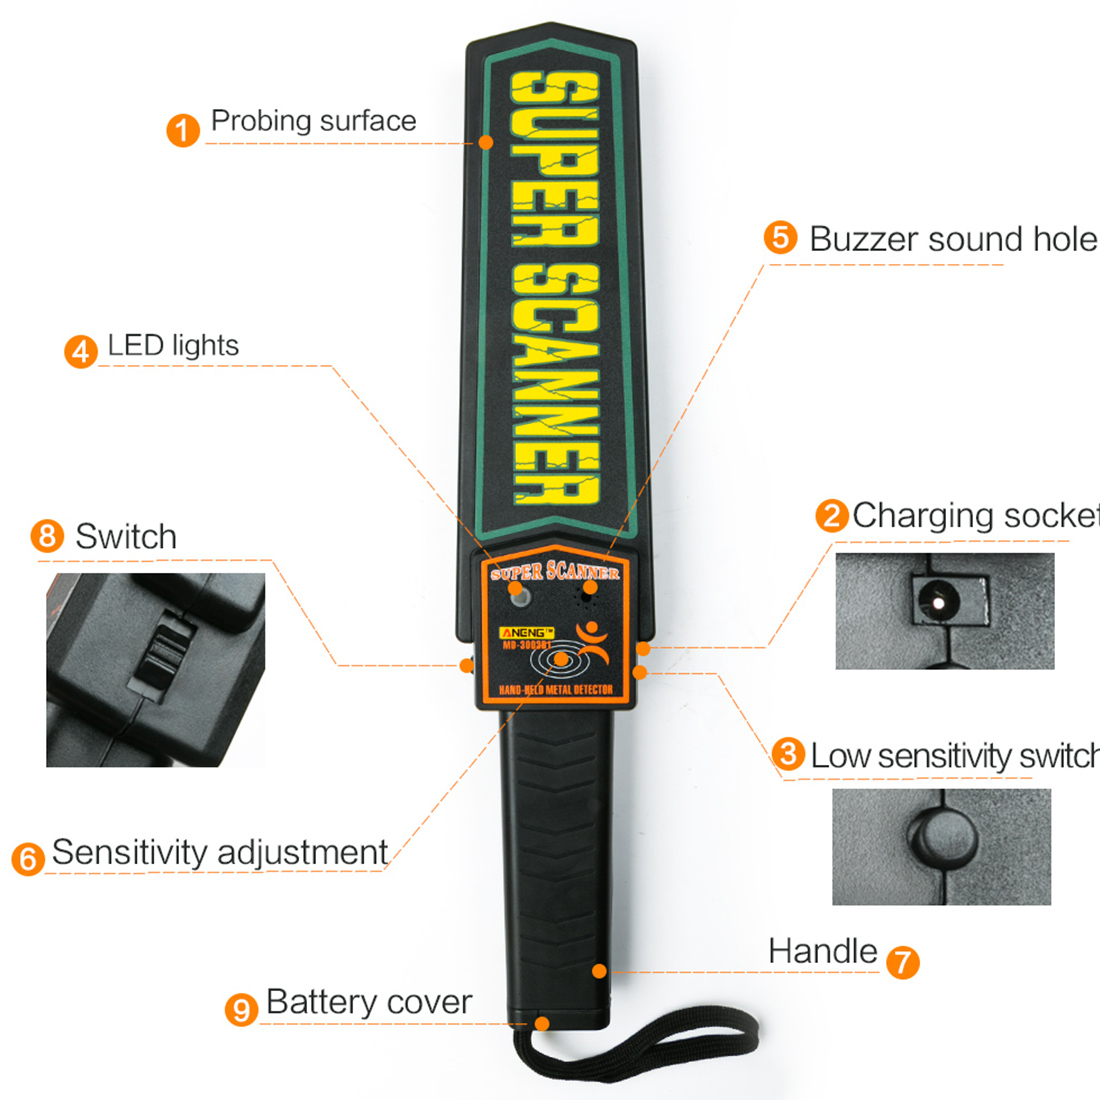 High Sensitivity Metal Detector Scanners Portable Handheld Security Super Scanner Tool Finder Electronic Measuring Tools brand new high sensitivity mini portable folding handheld metal detector ts80 guard security scanner sound light vibration alarm